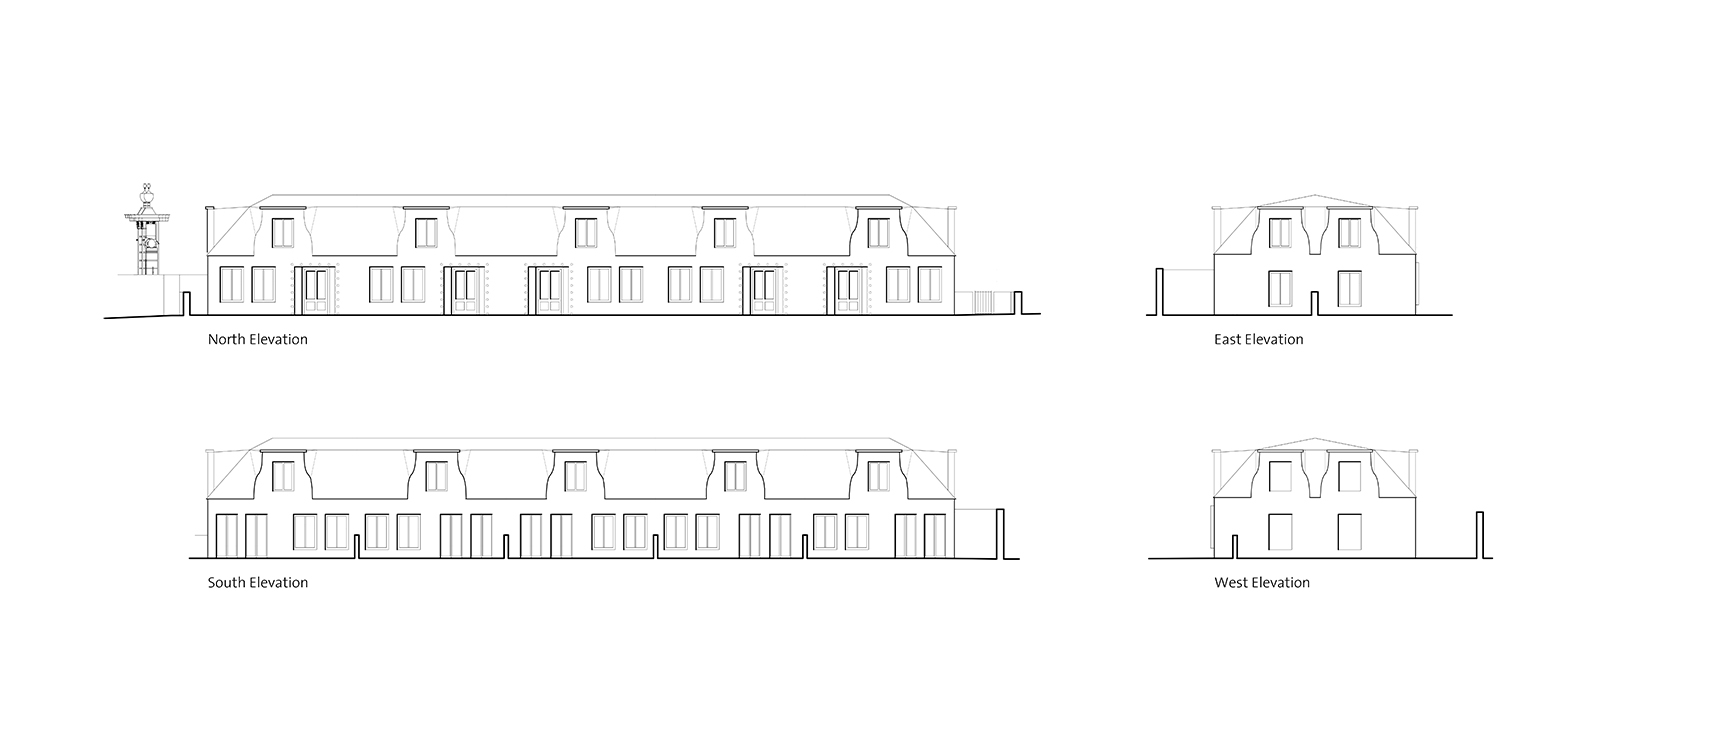 Mew house elevation drawings for residential development in Bernolákovo Slovakia by Ash Sakula Architects